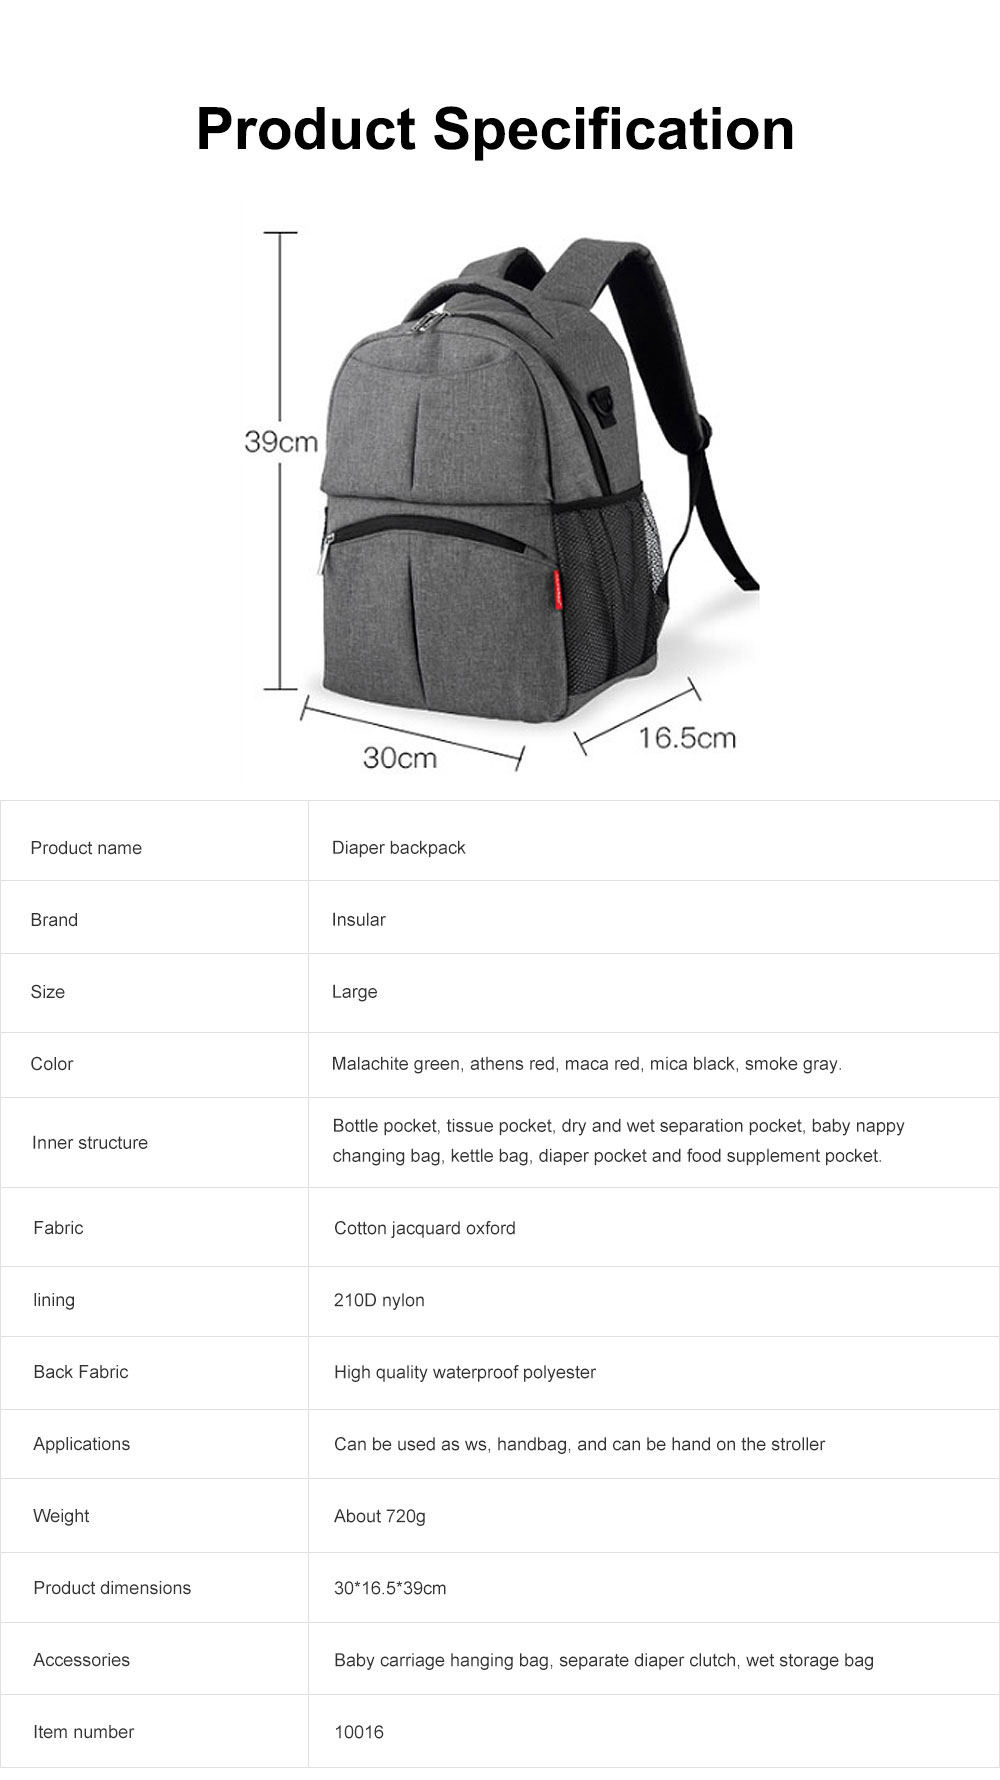 Diaper Bag Backpack Insular Fashion Baby Nursing Backpack with Large Capacity, Multi-Function Waterproof Durable Mammy Shoulders Bag 6